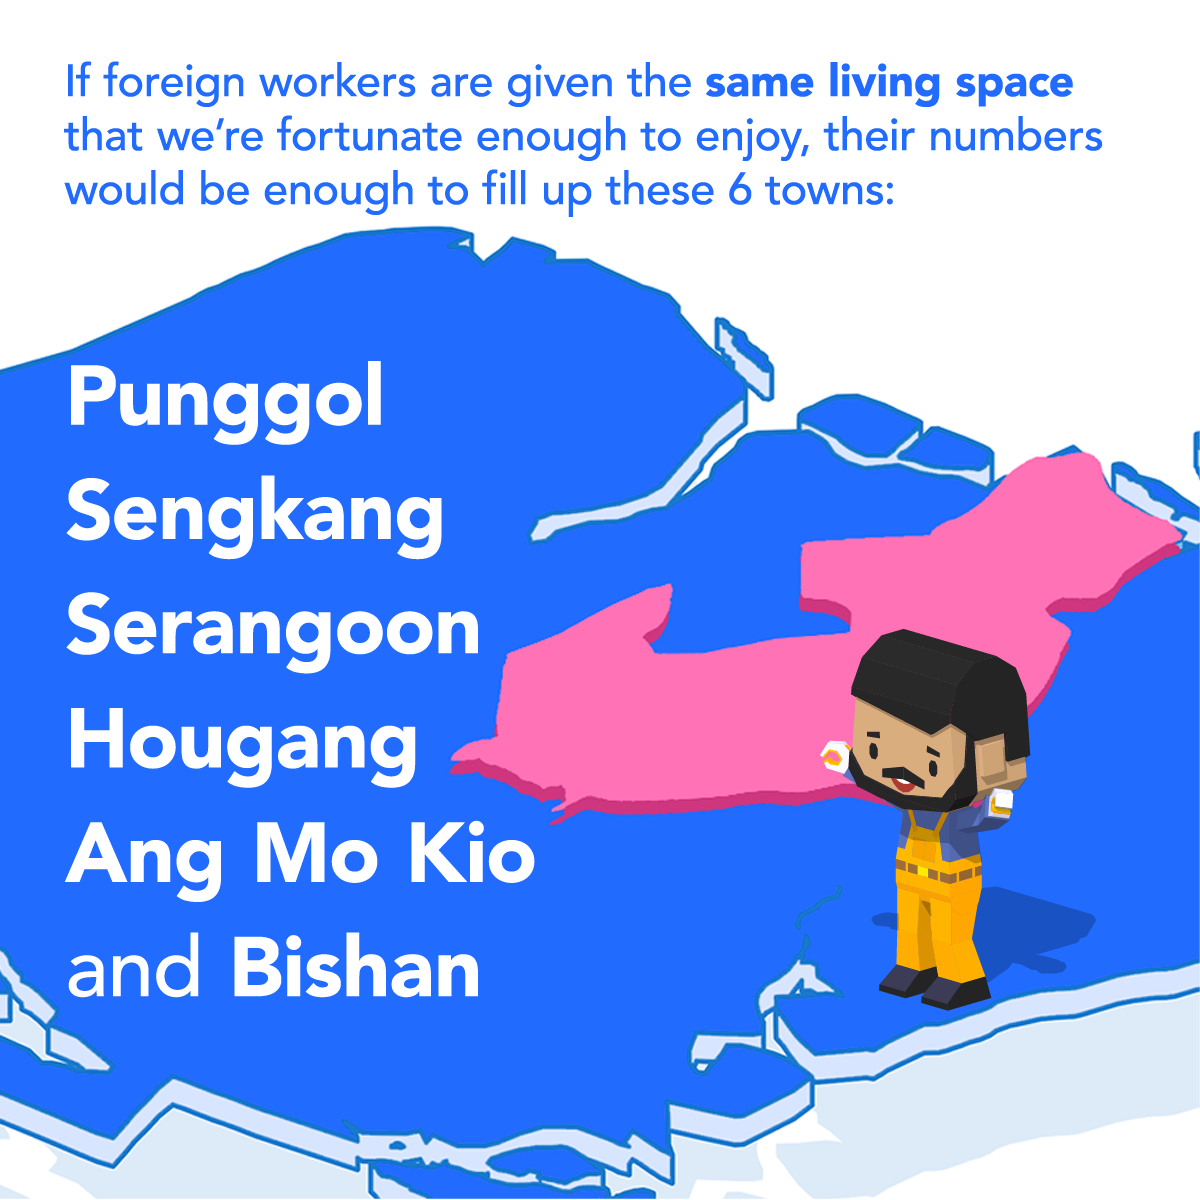 foreign worker dormitory living space singapore infographic 11